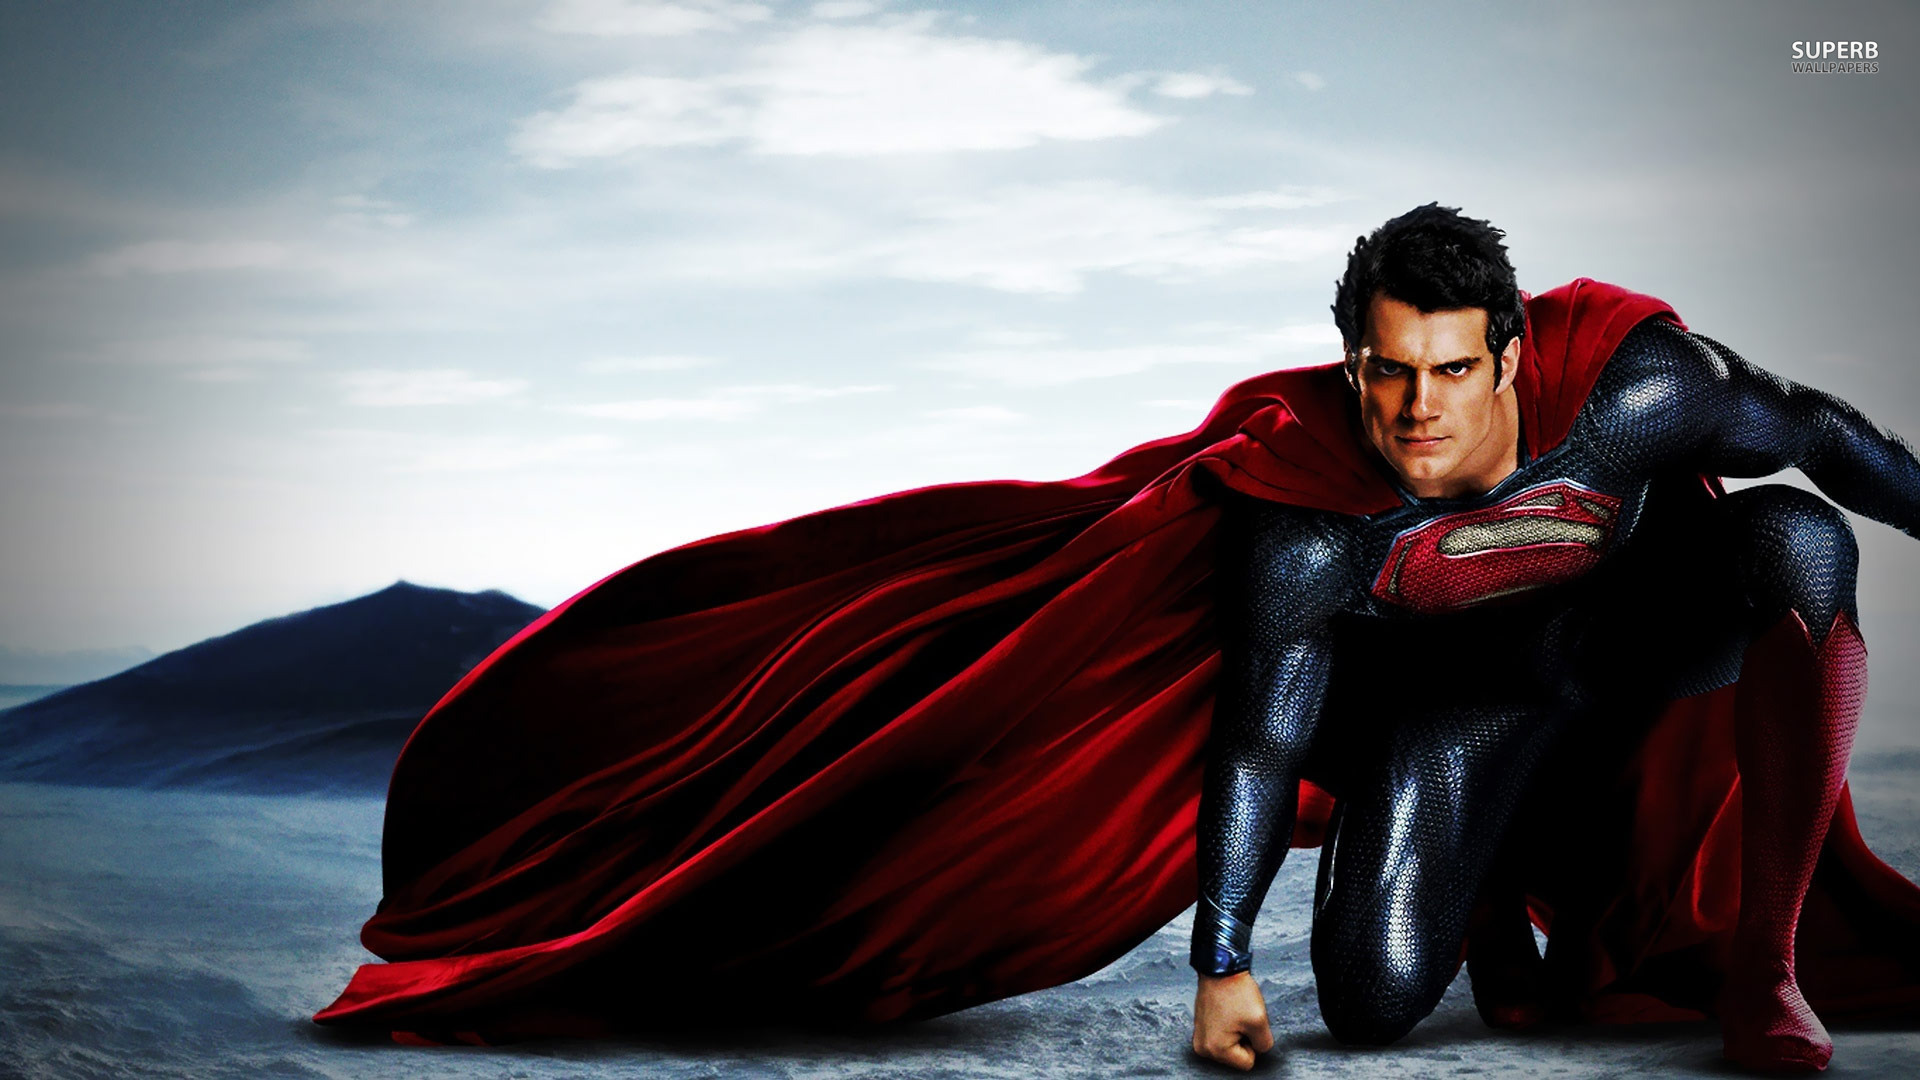 Best 35 Superman HD Wallpaper for Desktop 1920x1080